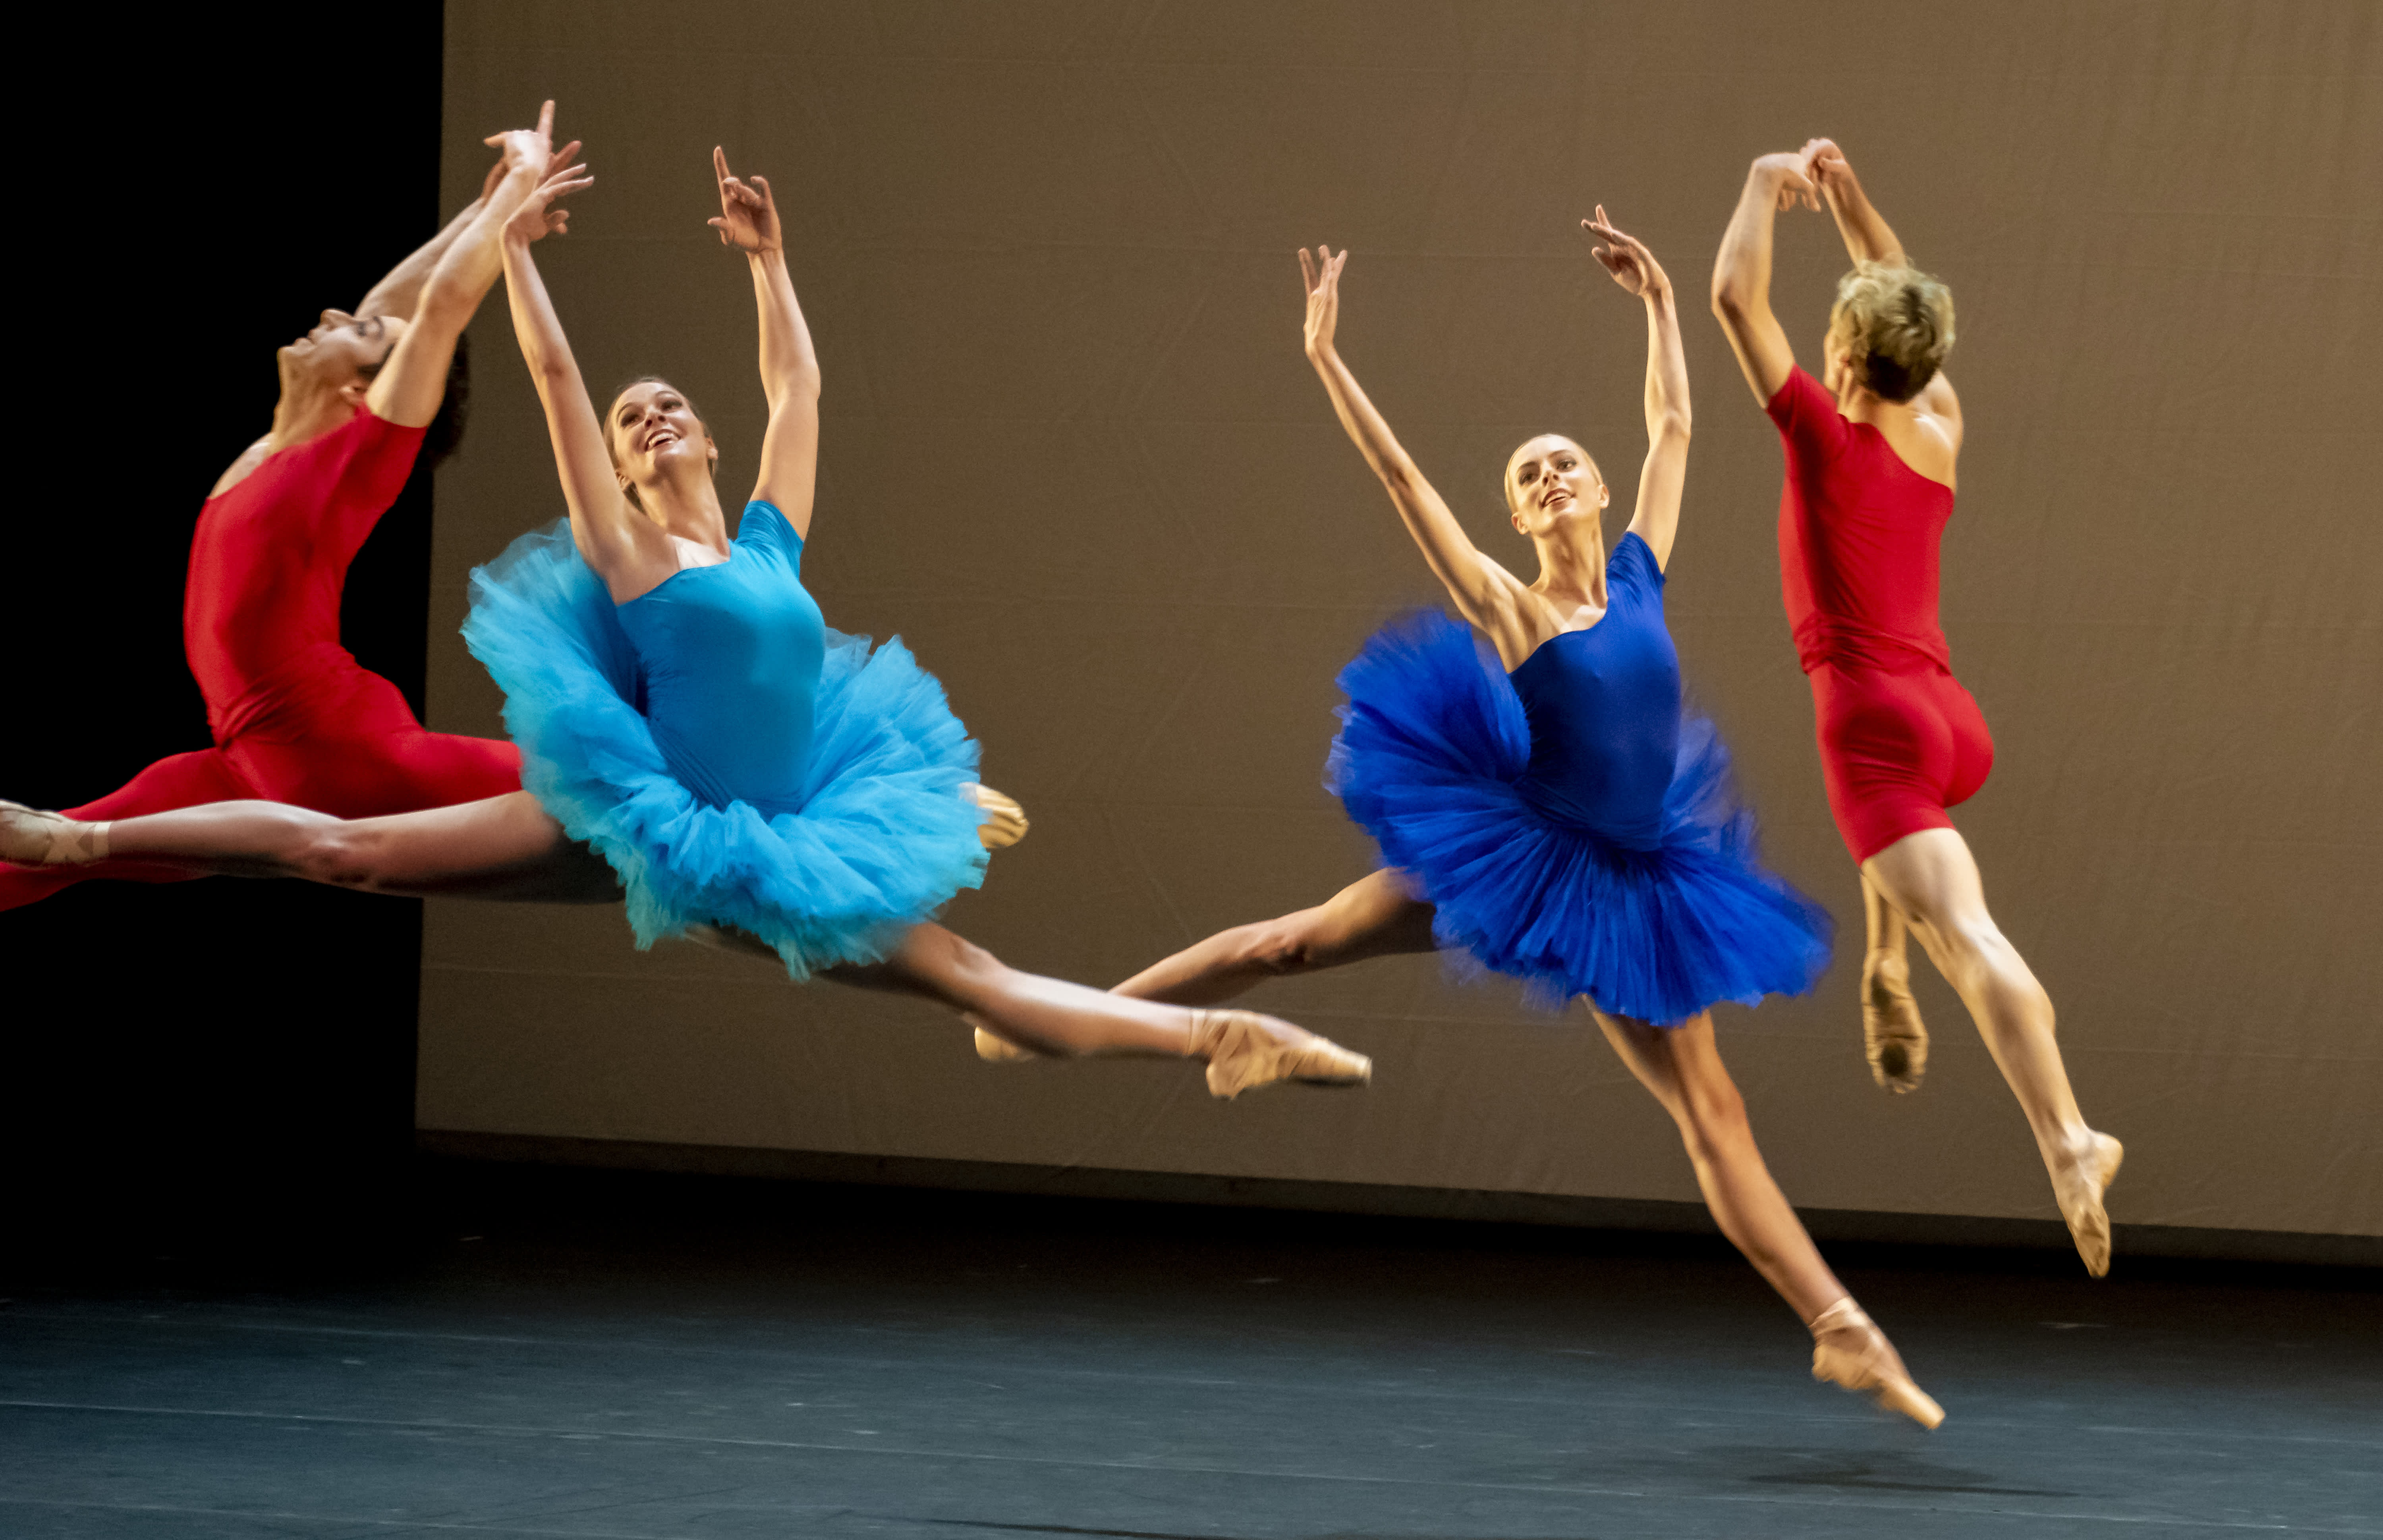 National ballet company predicts largest audiences in years for its return after Covid halt